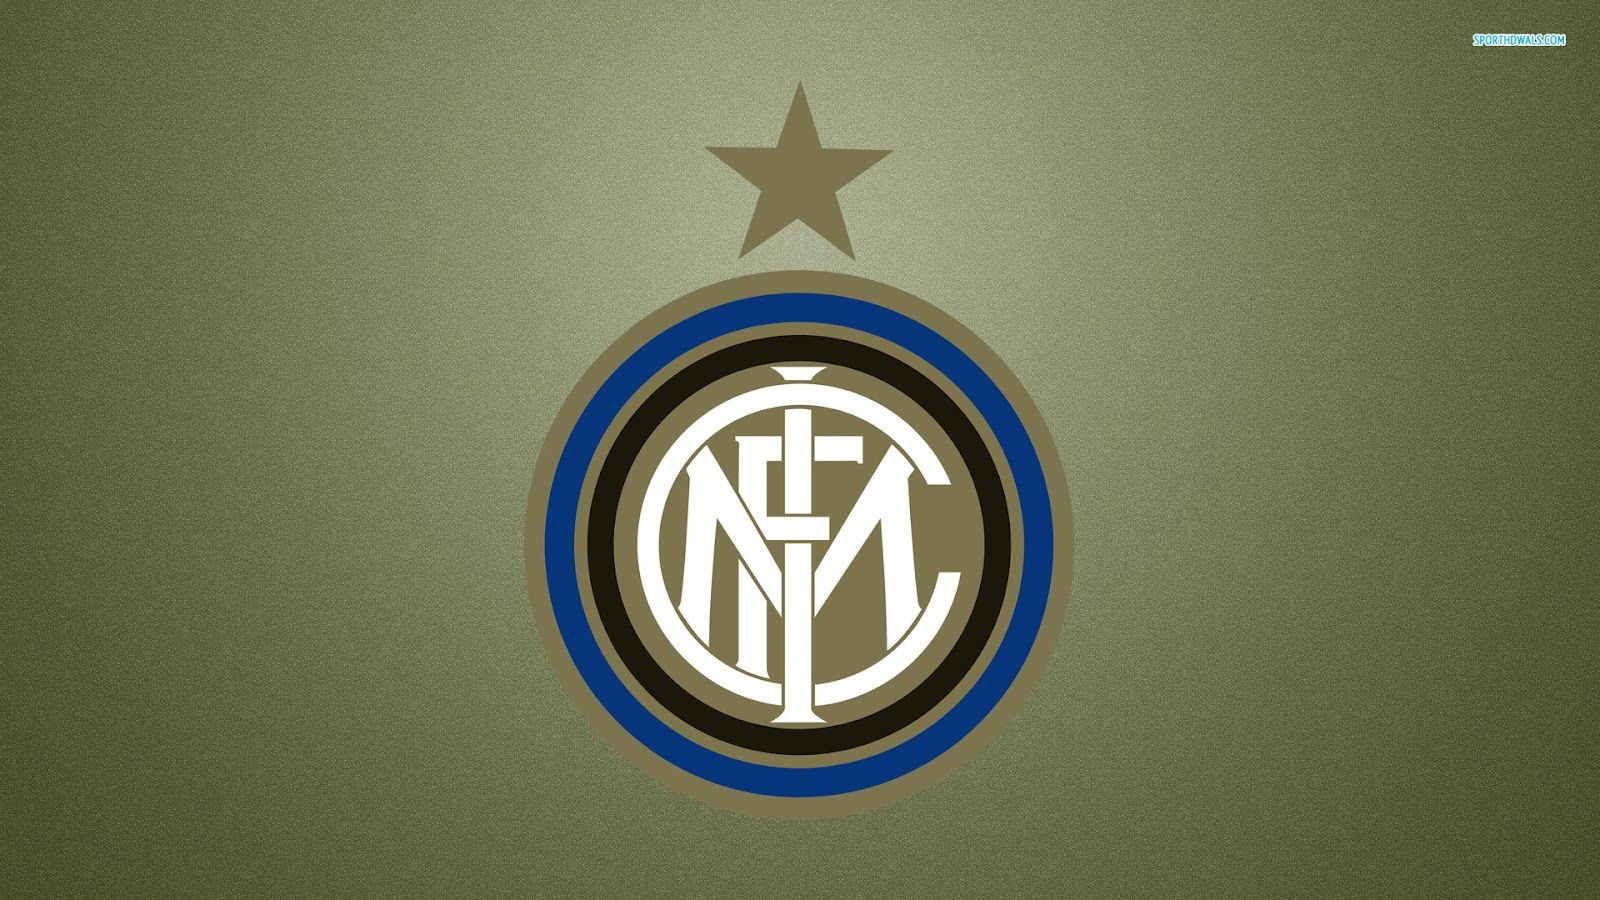 sun inter milan logo - photo #33